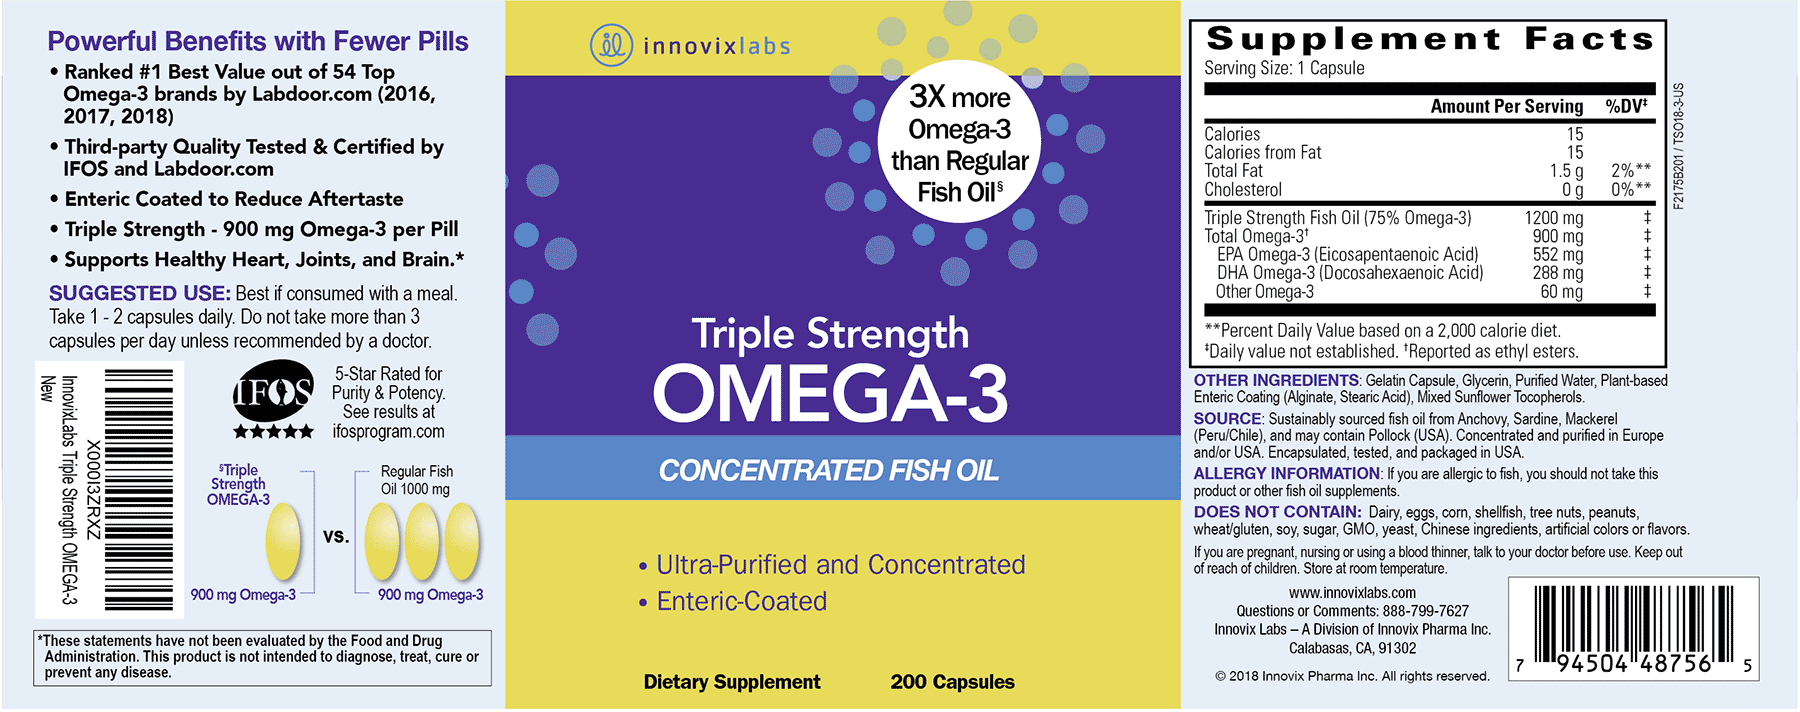 Triple Strength Omega-3 product label